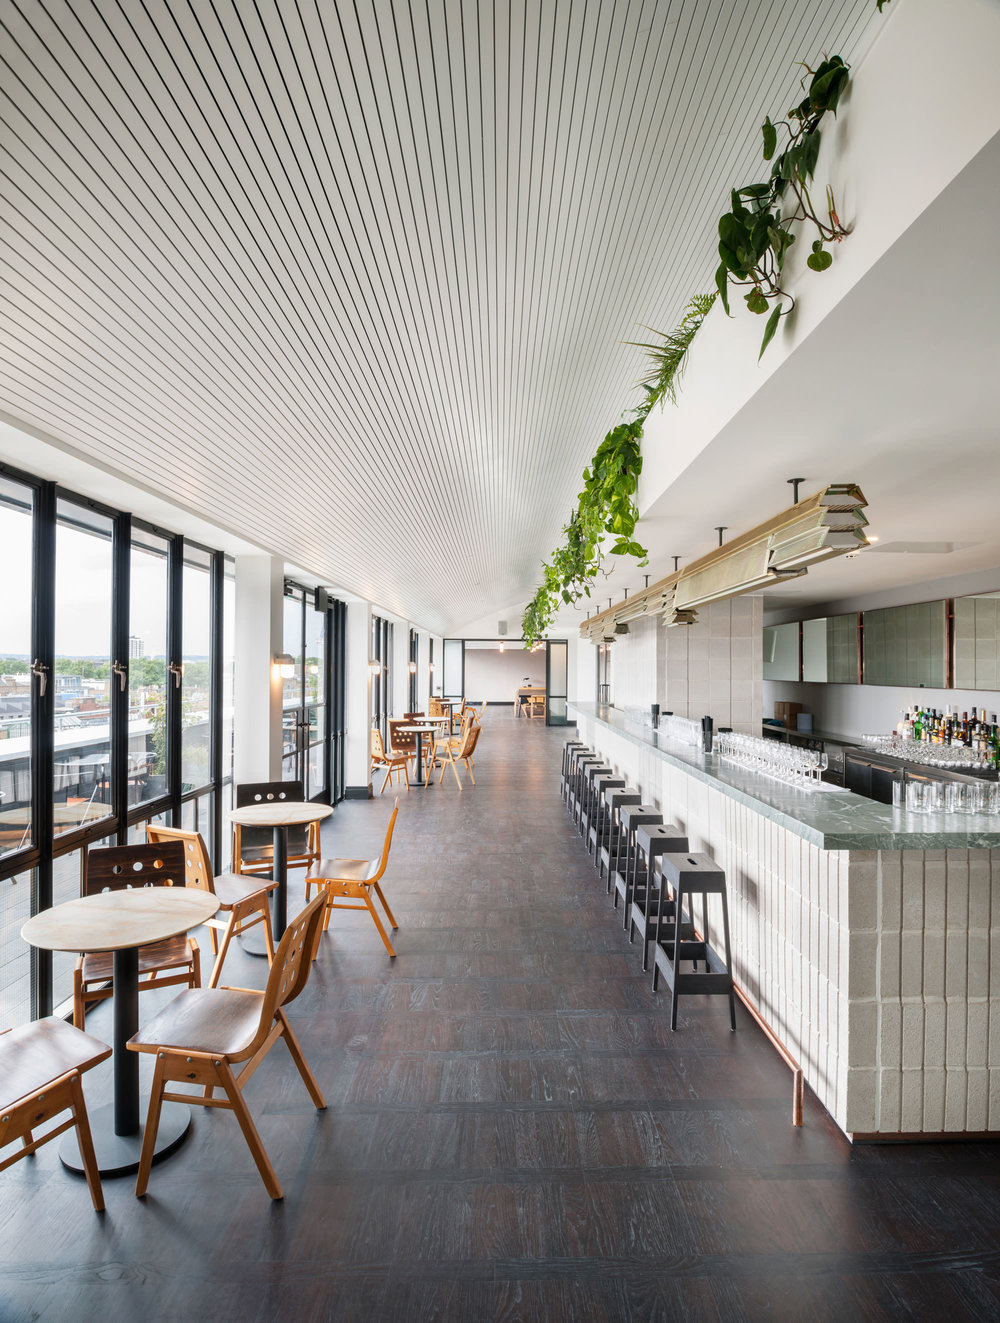 Ace_Hotel_London_Shoreditch_7th_Floor_Andrew_Meredith_7.8.14_18.jpg